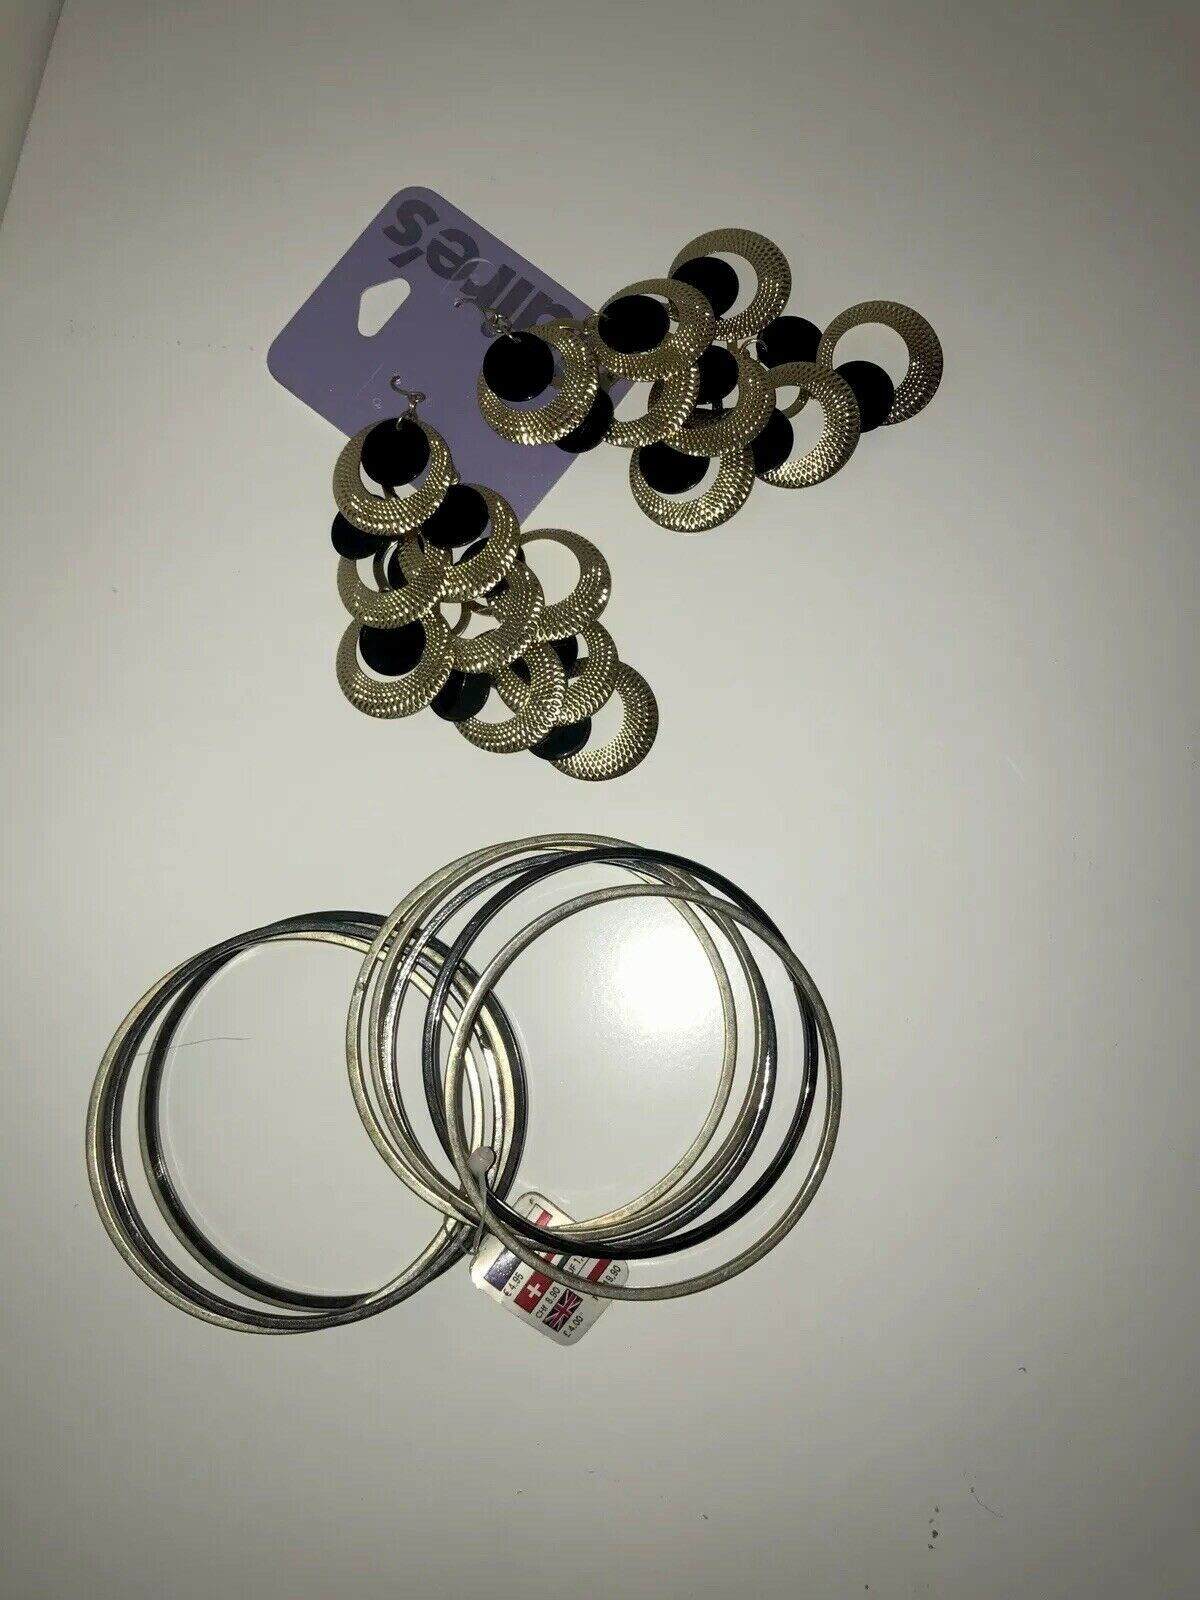 claires accessories earrings And Bangle Set Bundle. BRAND NEW